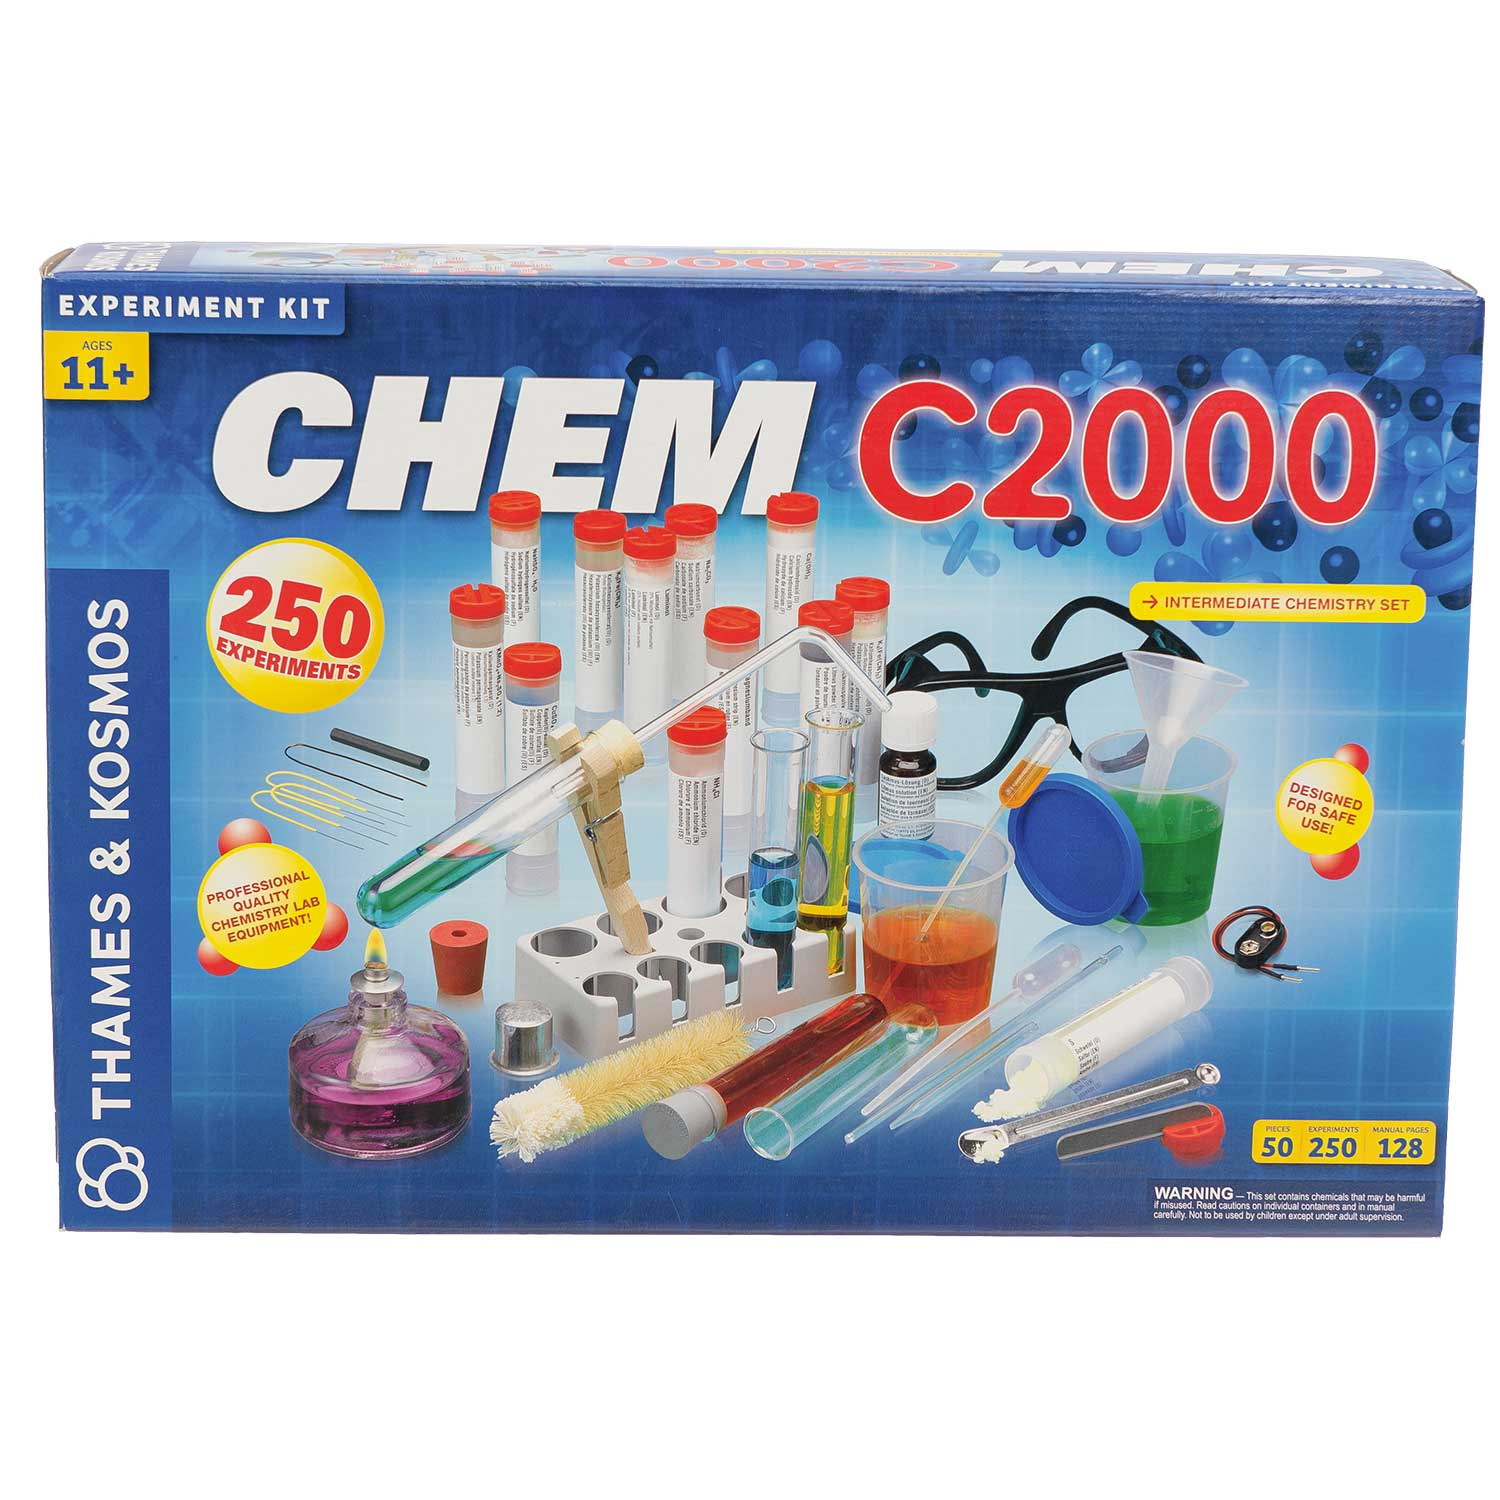 Chemistry Kit - CHEM C2000